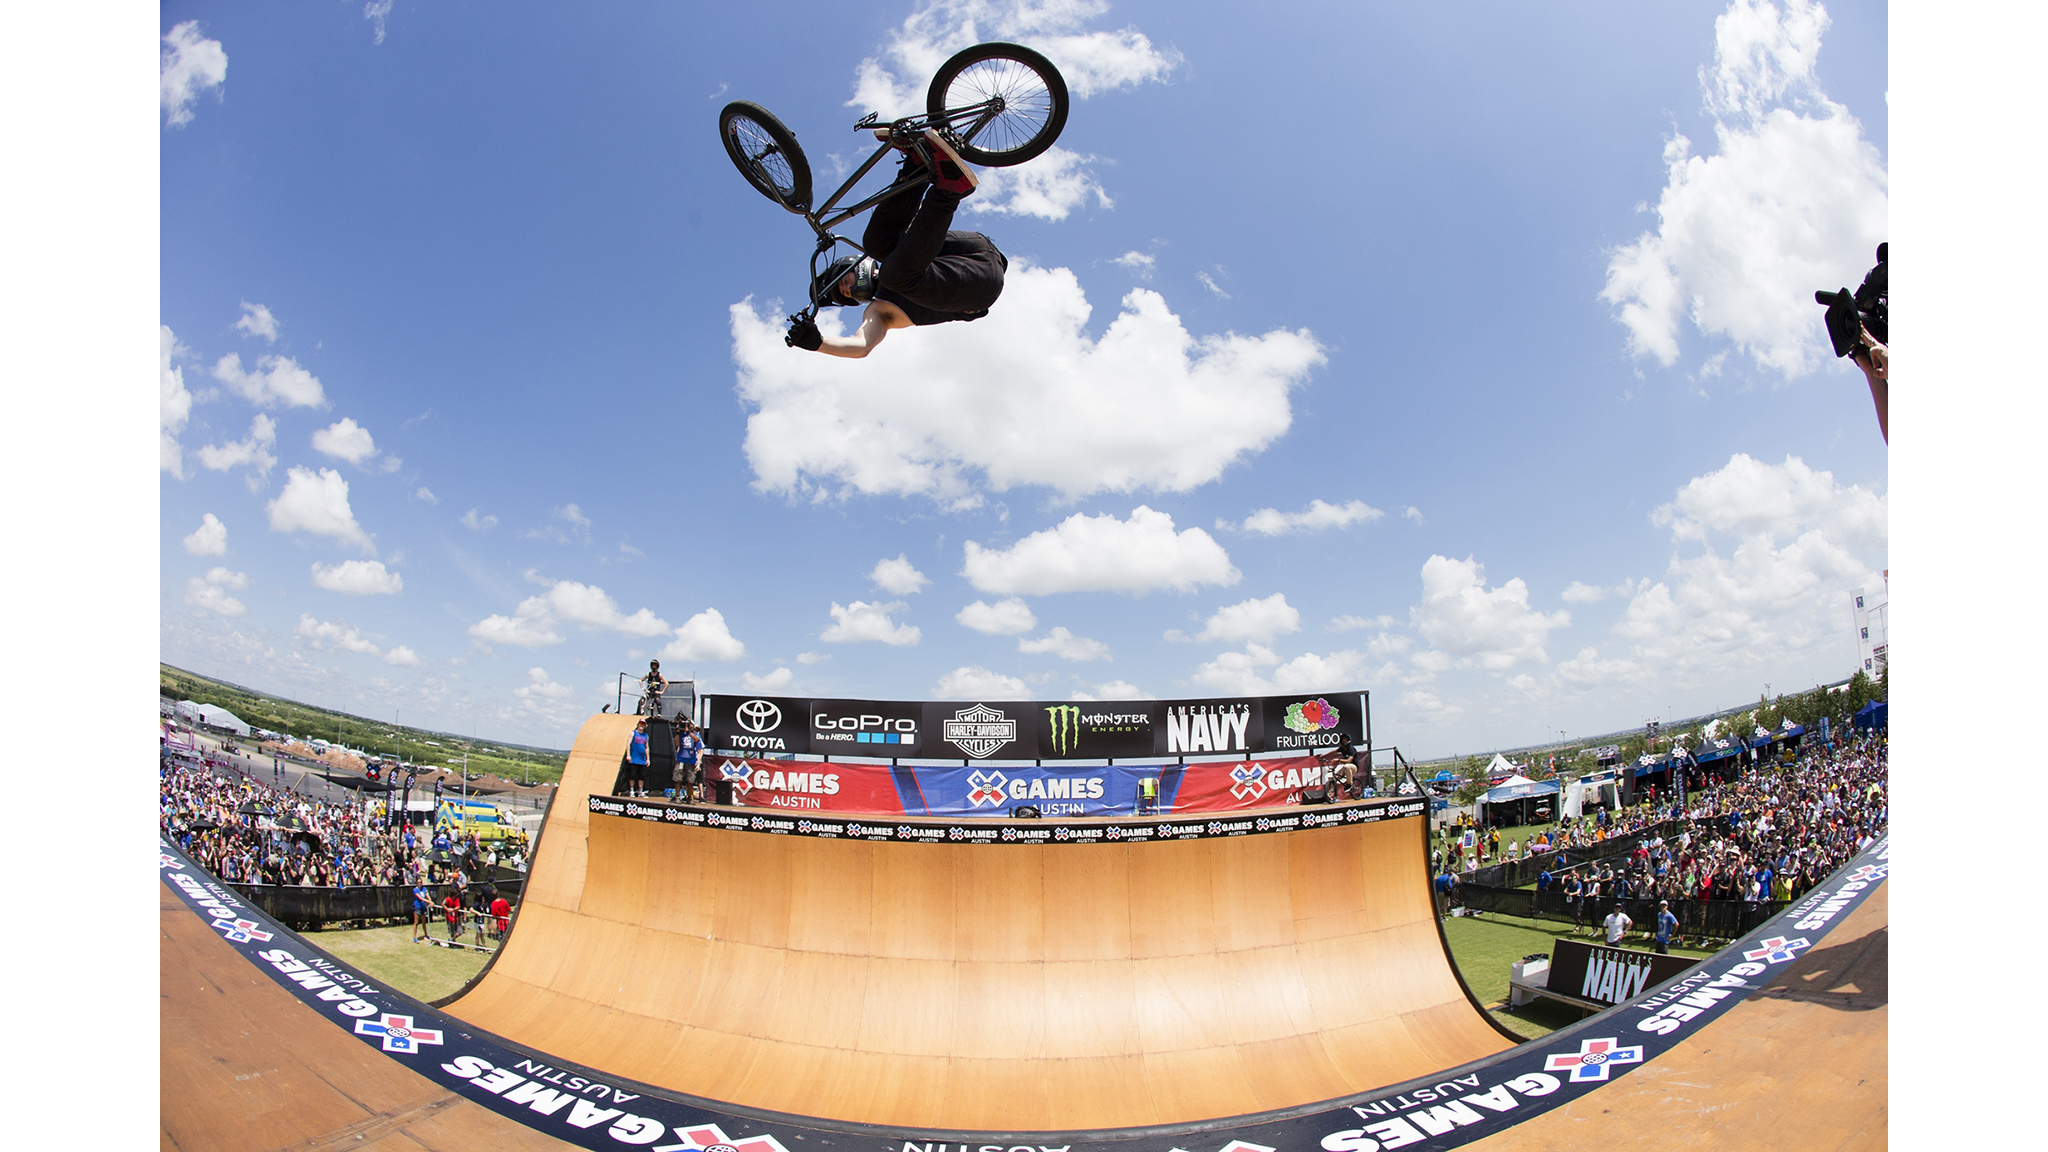 Vince Byron had competed in Bestwick's big shadow since his X Games debut in 2010. That all changed at X Games Austin 2015.